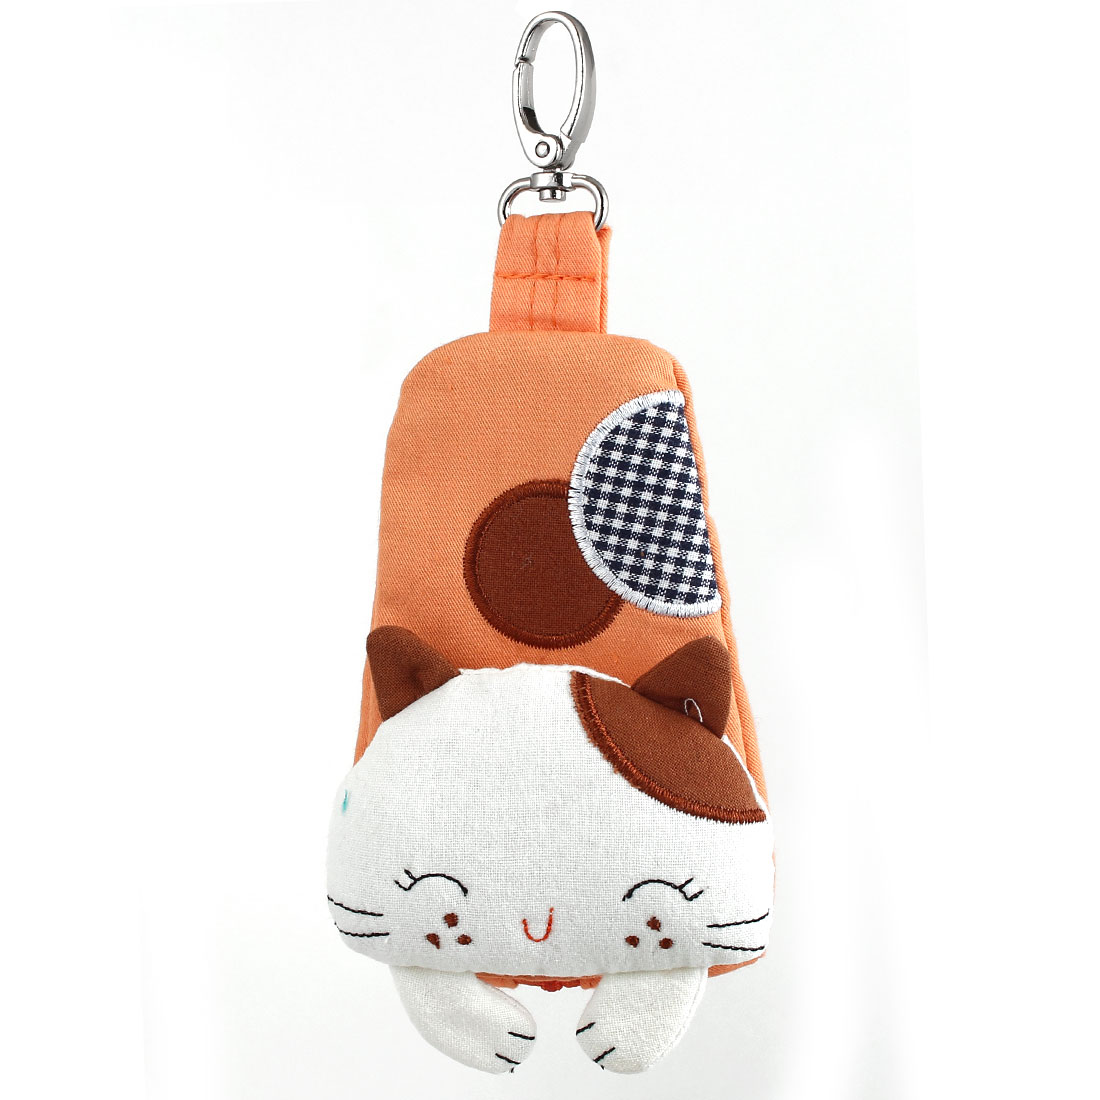 Lobster Clasp Zip Up Cloth Cat Head Decor Key Coin Bag Purse Wallet Pouch Orange